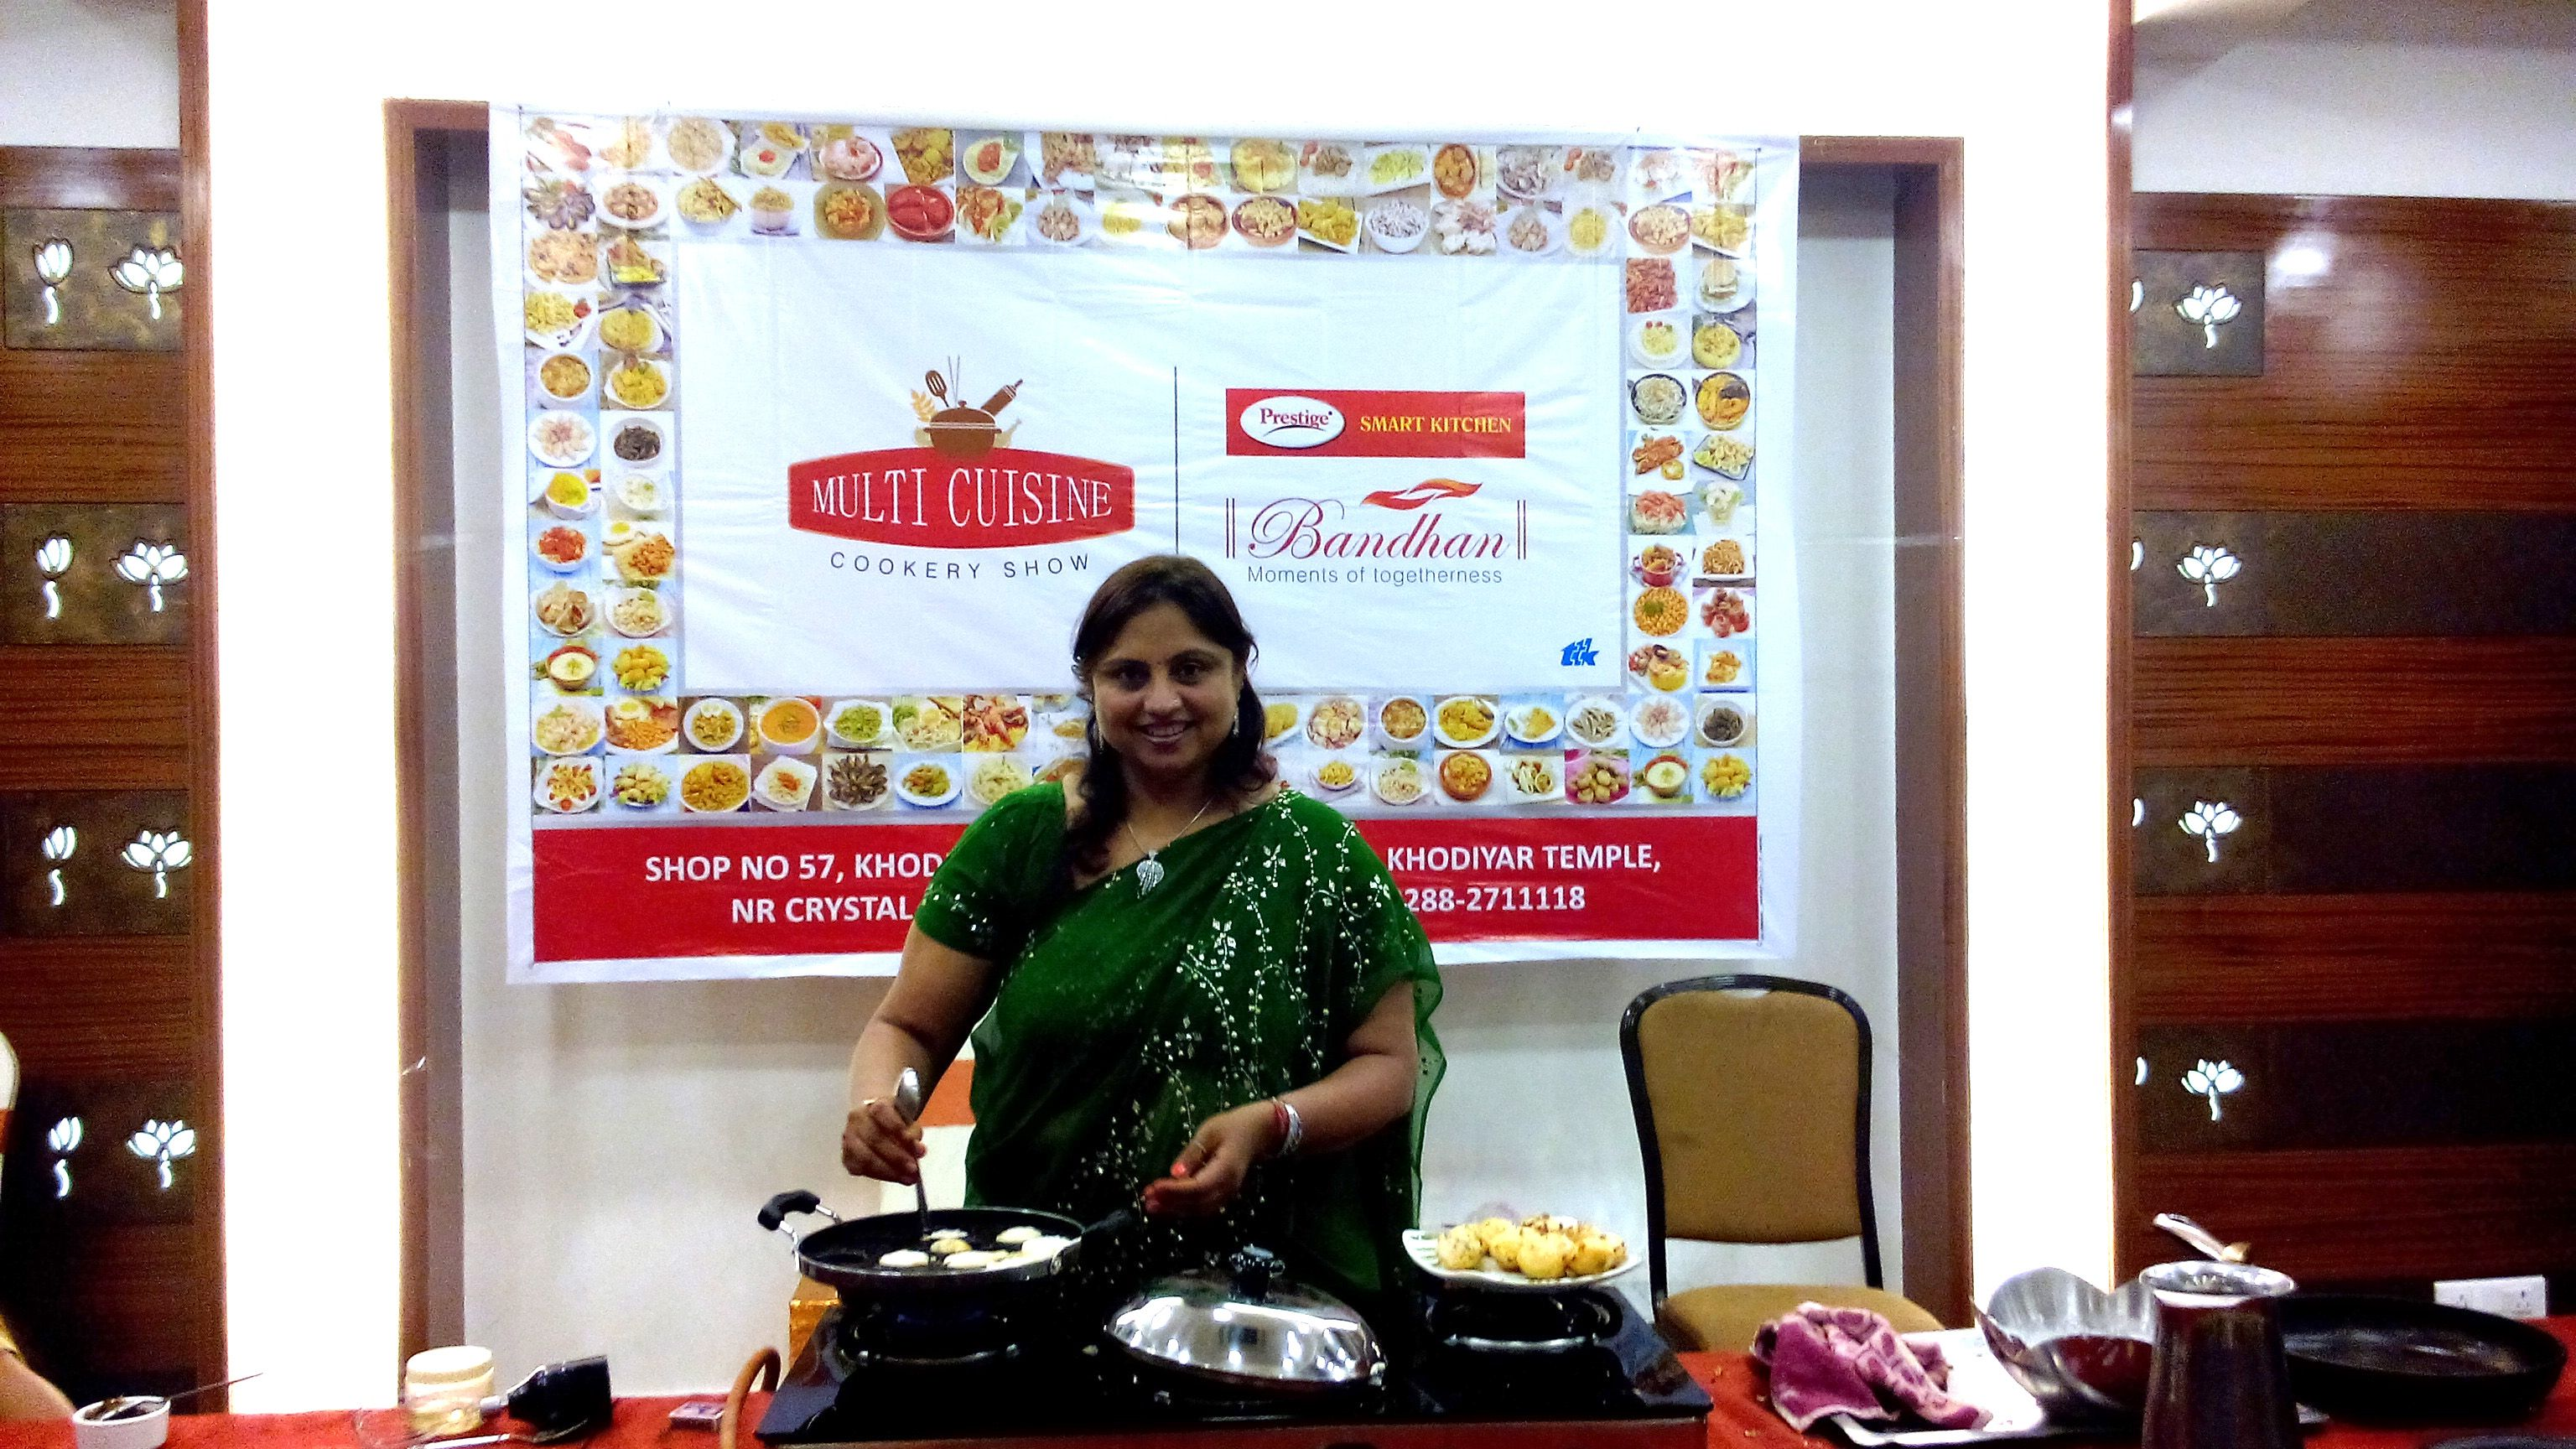 Prestige Bandhan, a multi-cuisine cookery show - held at ...